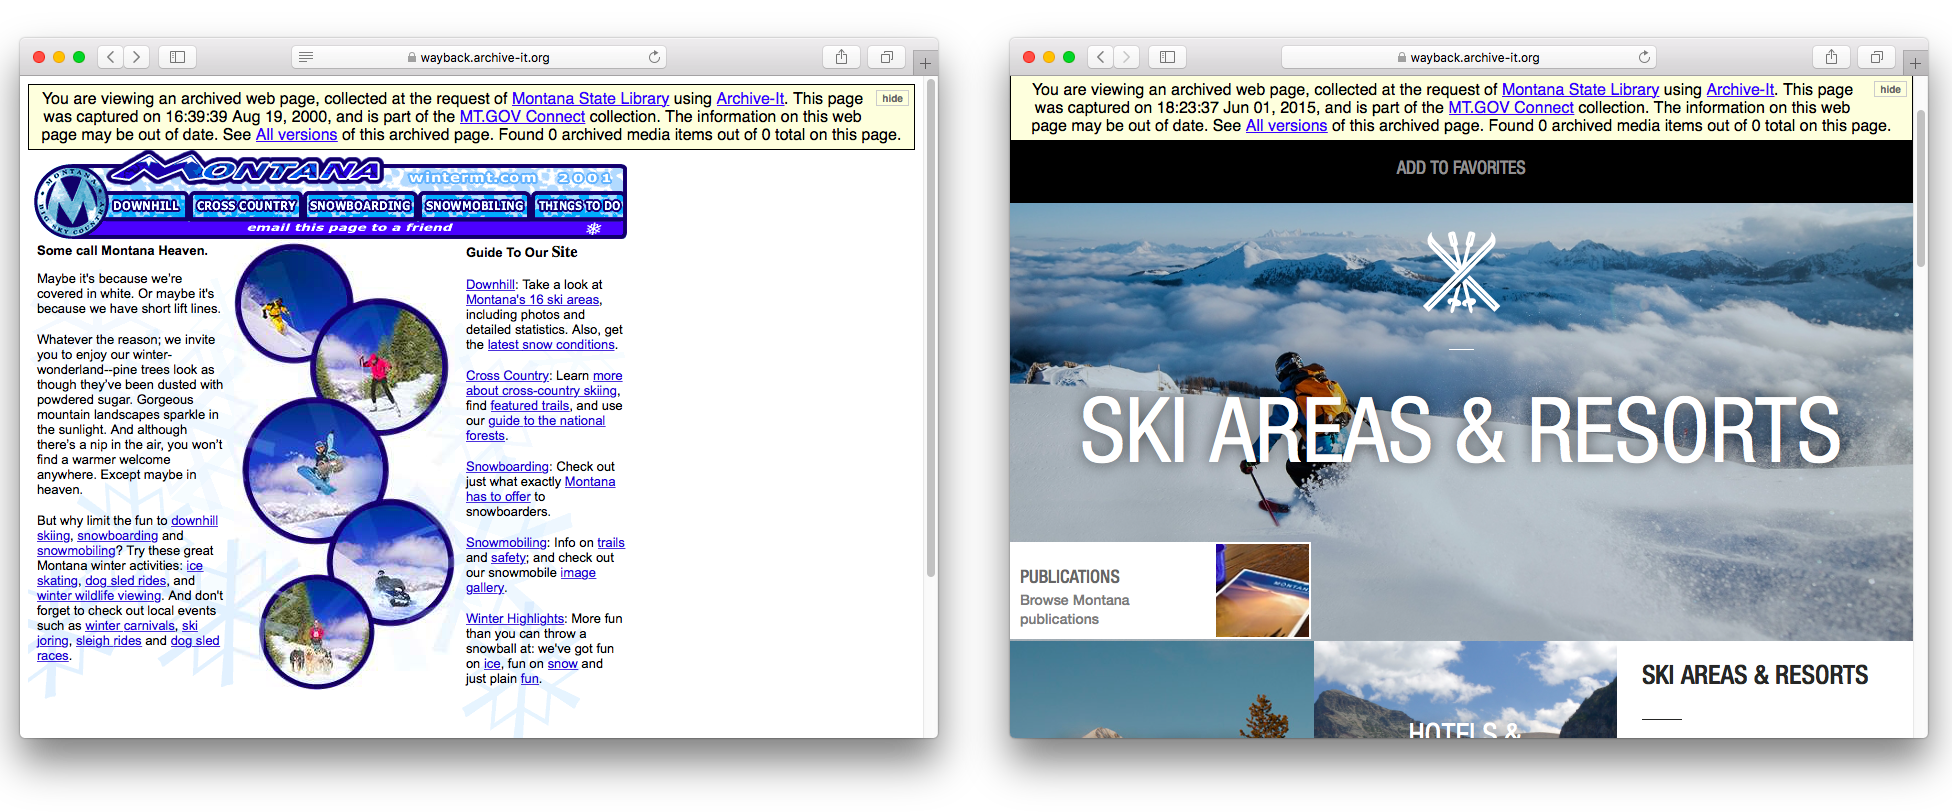 Screenshots of the Montana Department of Tourism website captures from 2000 and 2015